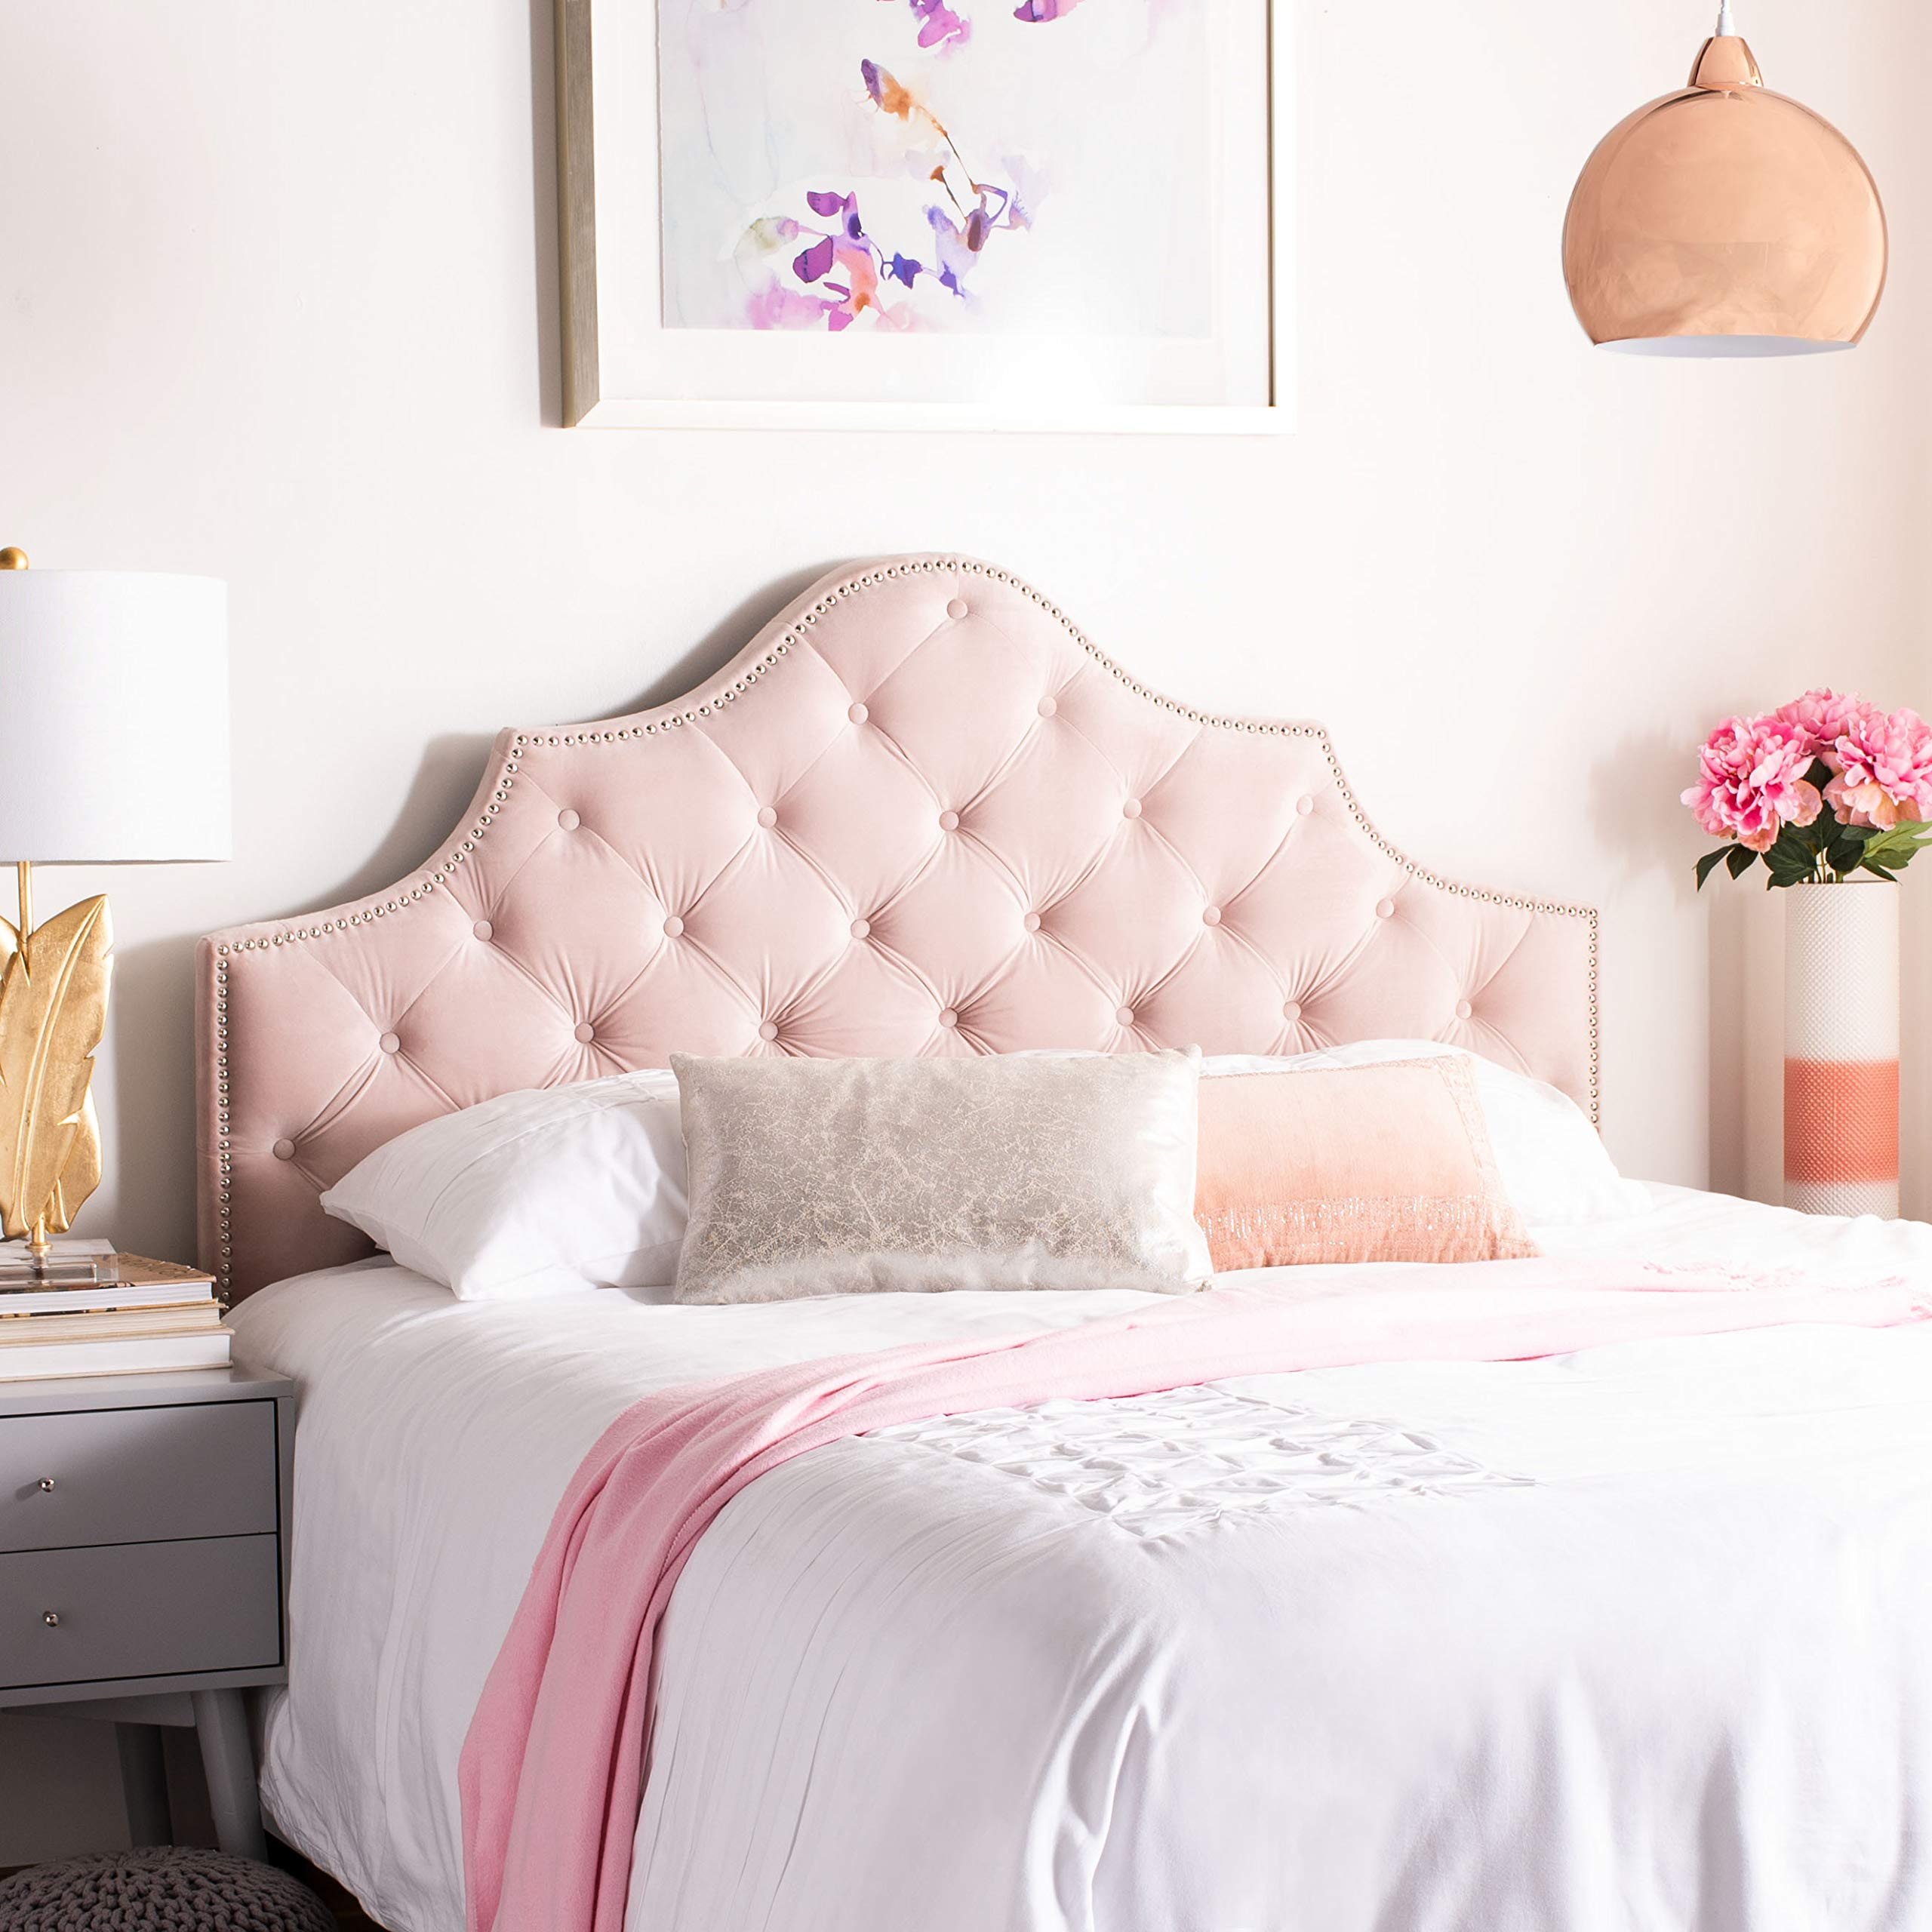 Safavieh MCR4036K-Q Home Collection Arebelle Blush Pink Velvet Tufted (Queen) Headboard, by Safavieh